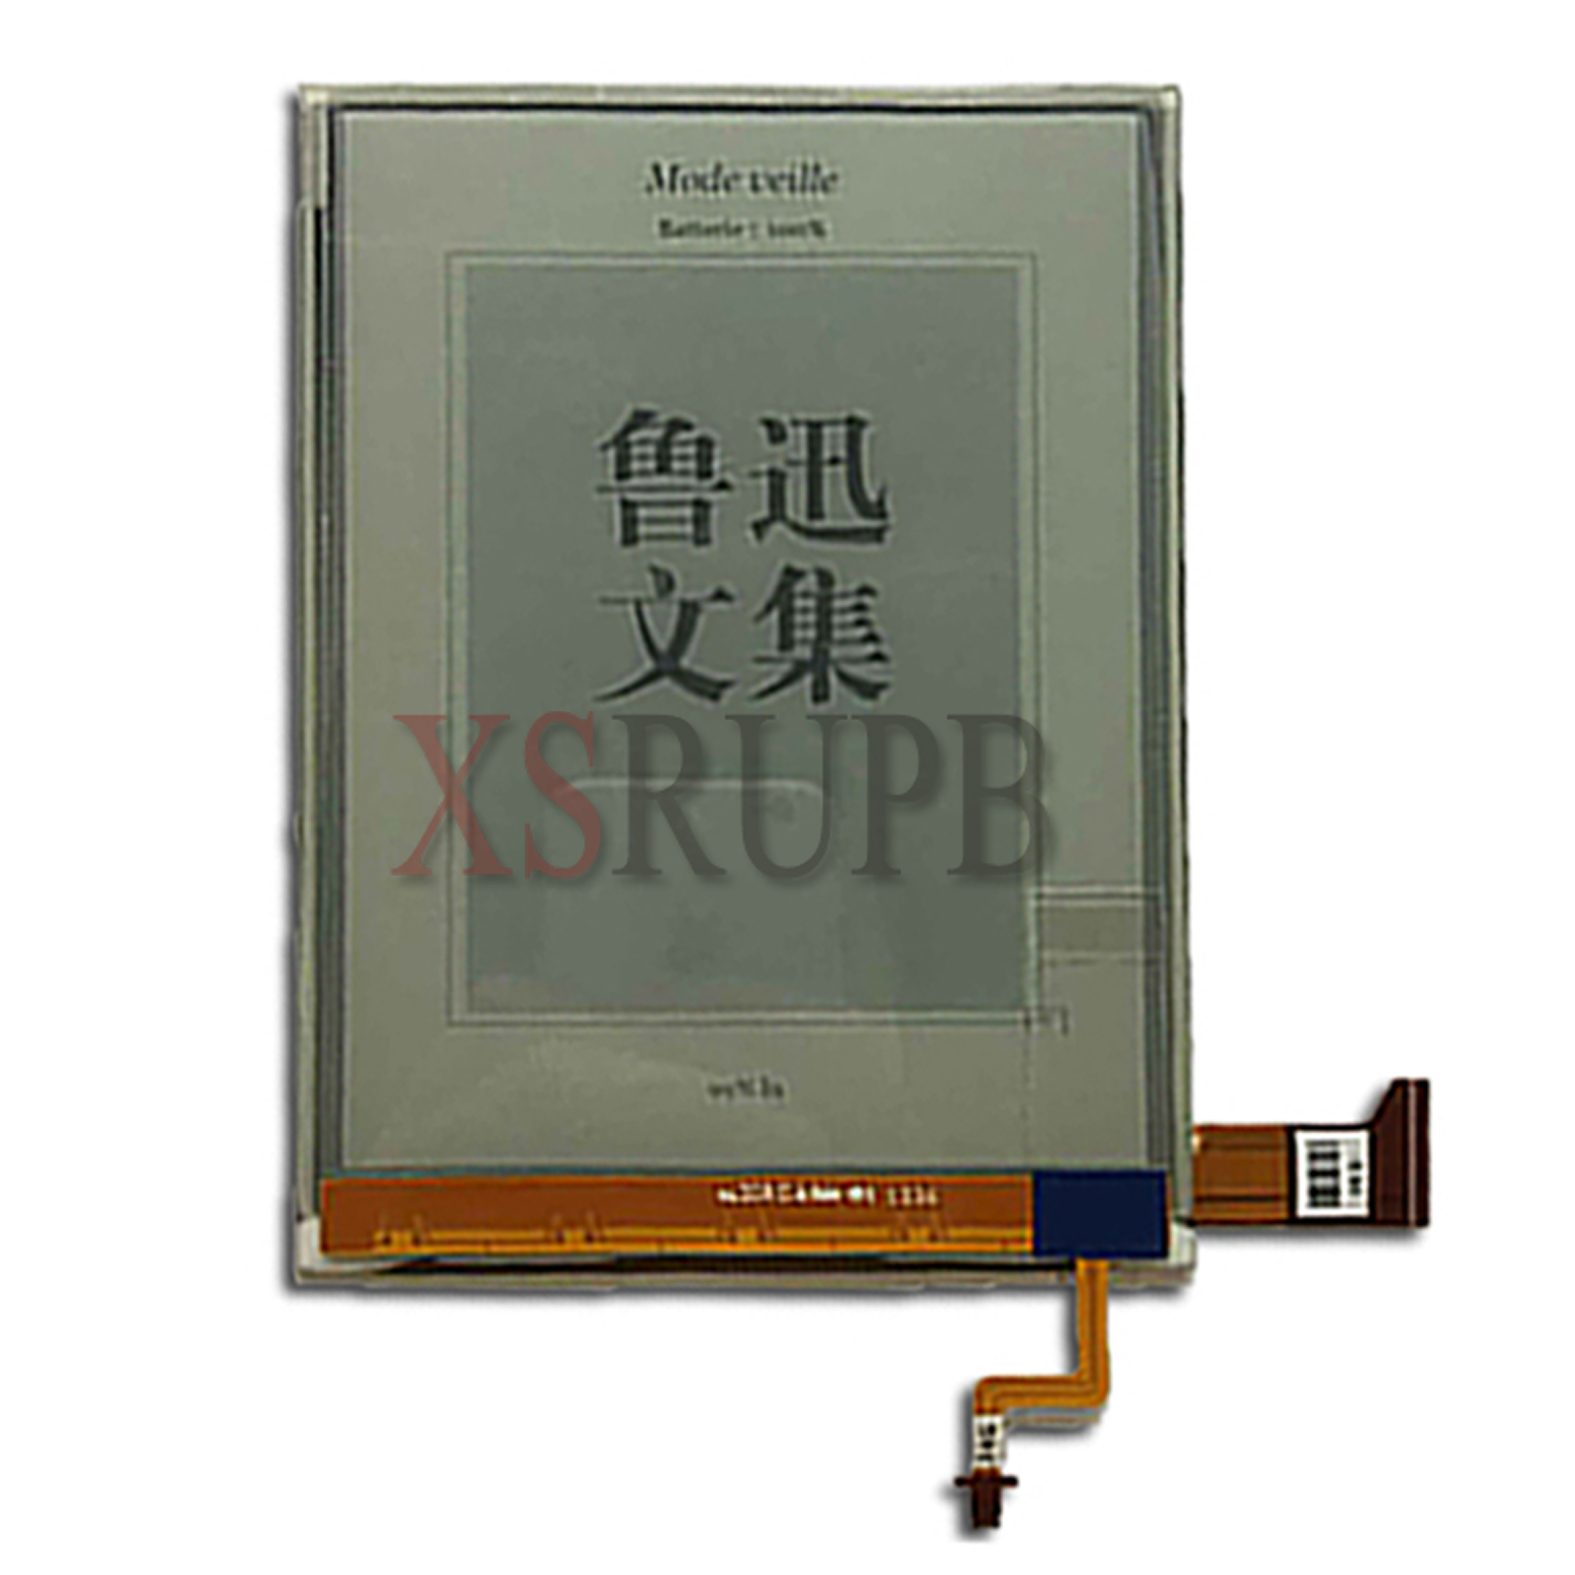 NEW Original E Ink Pearl HD Display for Kobo Glo Model N613 E-book Erader E-Ink LCD Screen Glass Panel Ebook replacement original new lcd screen ed068tg1 for kobo aura h2o kobo aura h20 with backlight reader e book lcd displayl free shipping